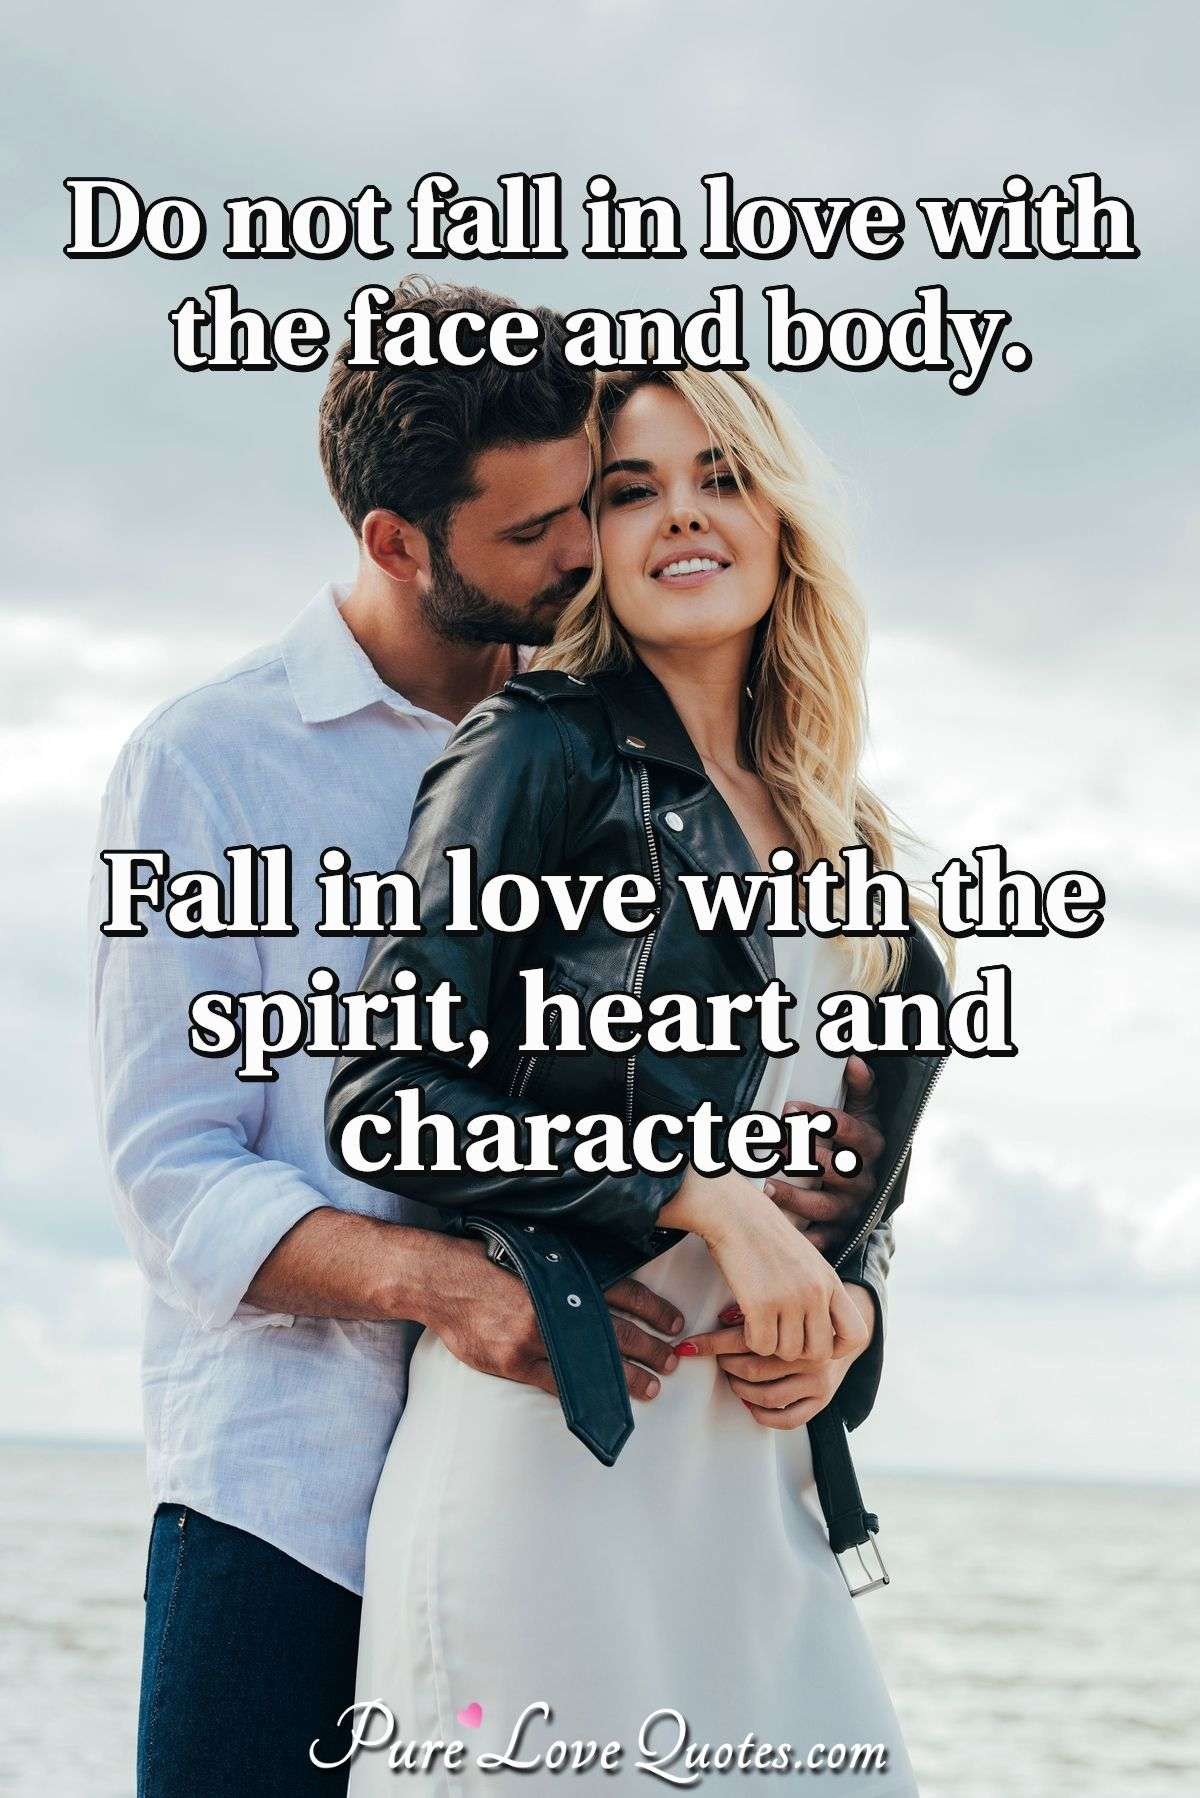 Do not fall in love with the face and body. Fall in love with the spirit, heart and character. - Anonymous